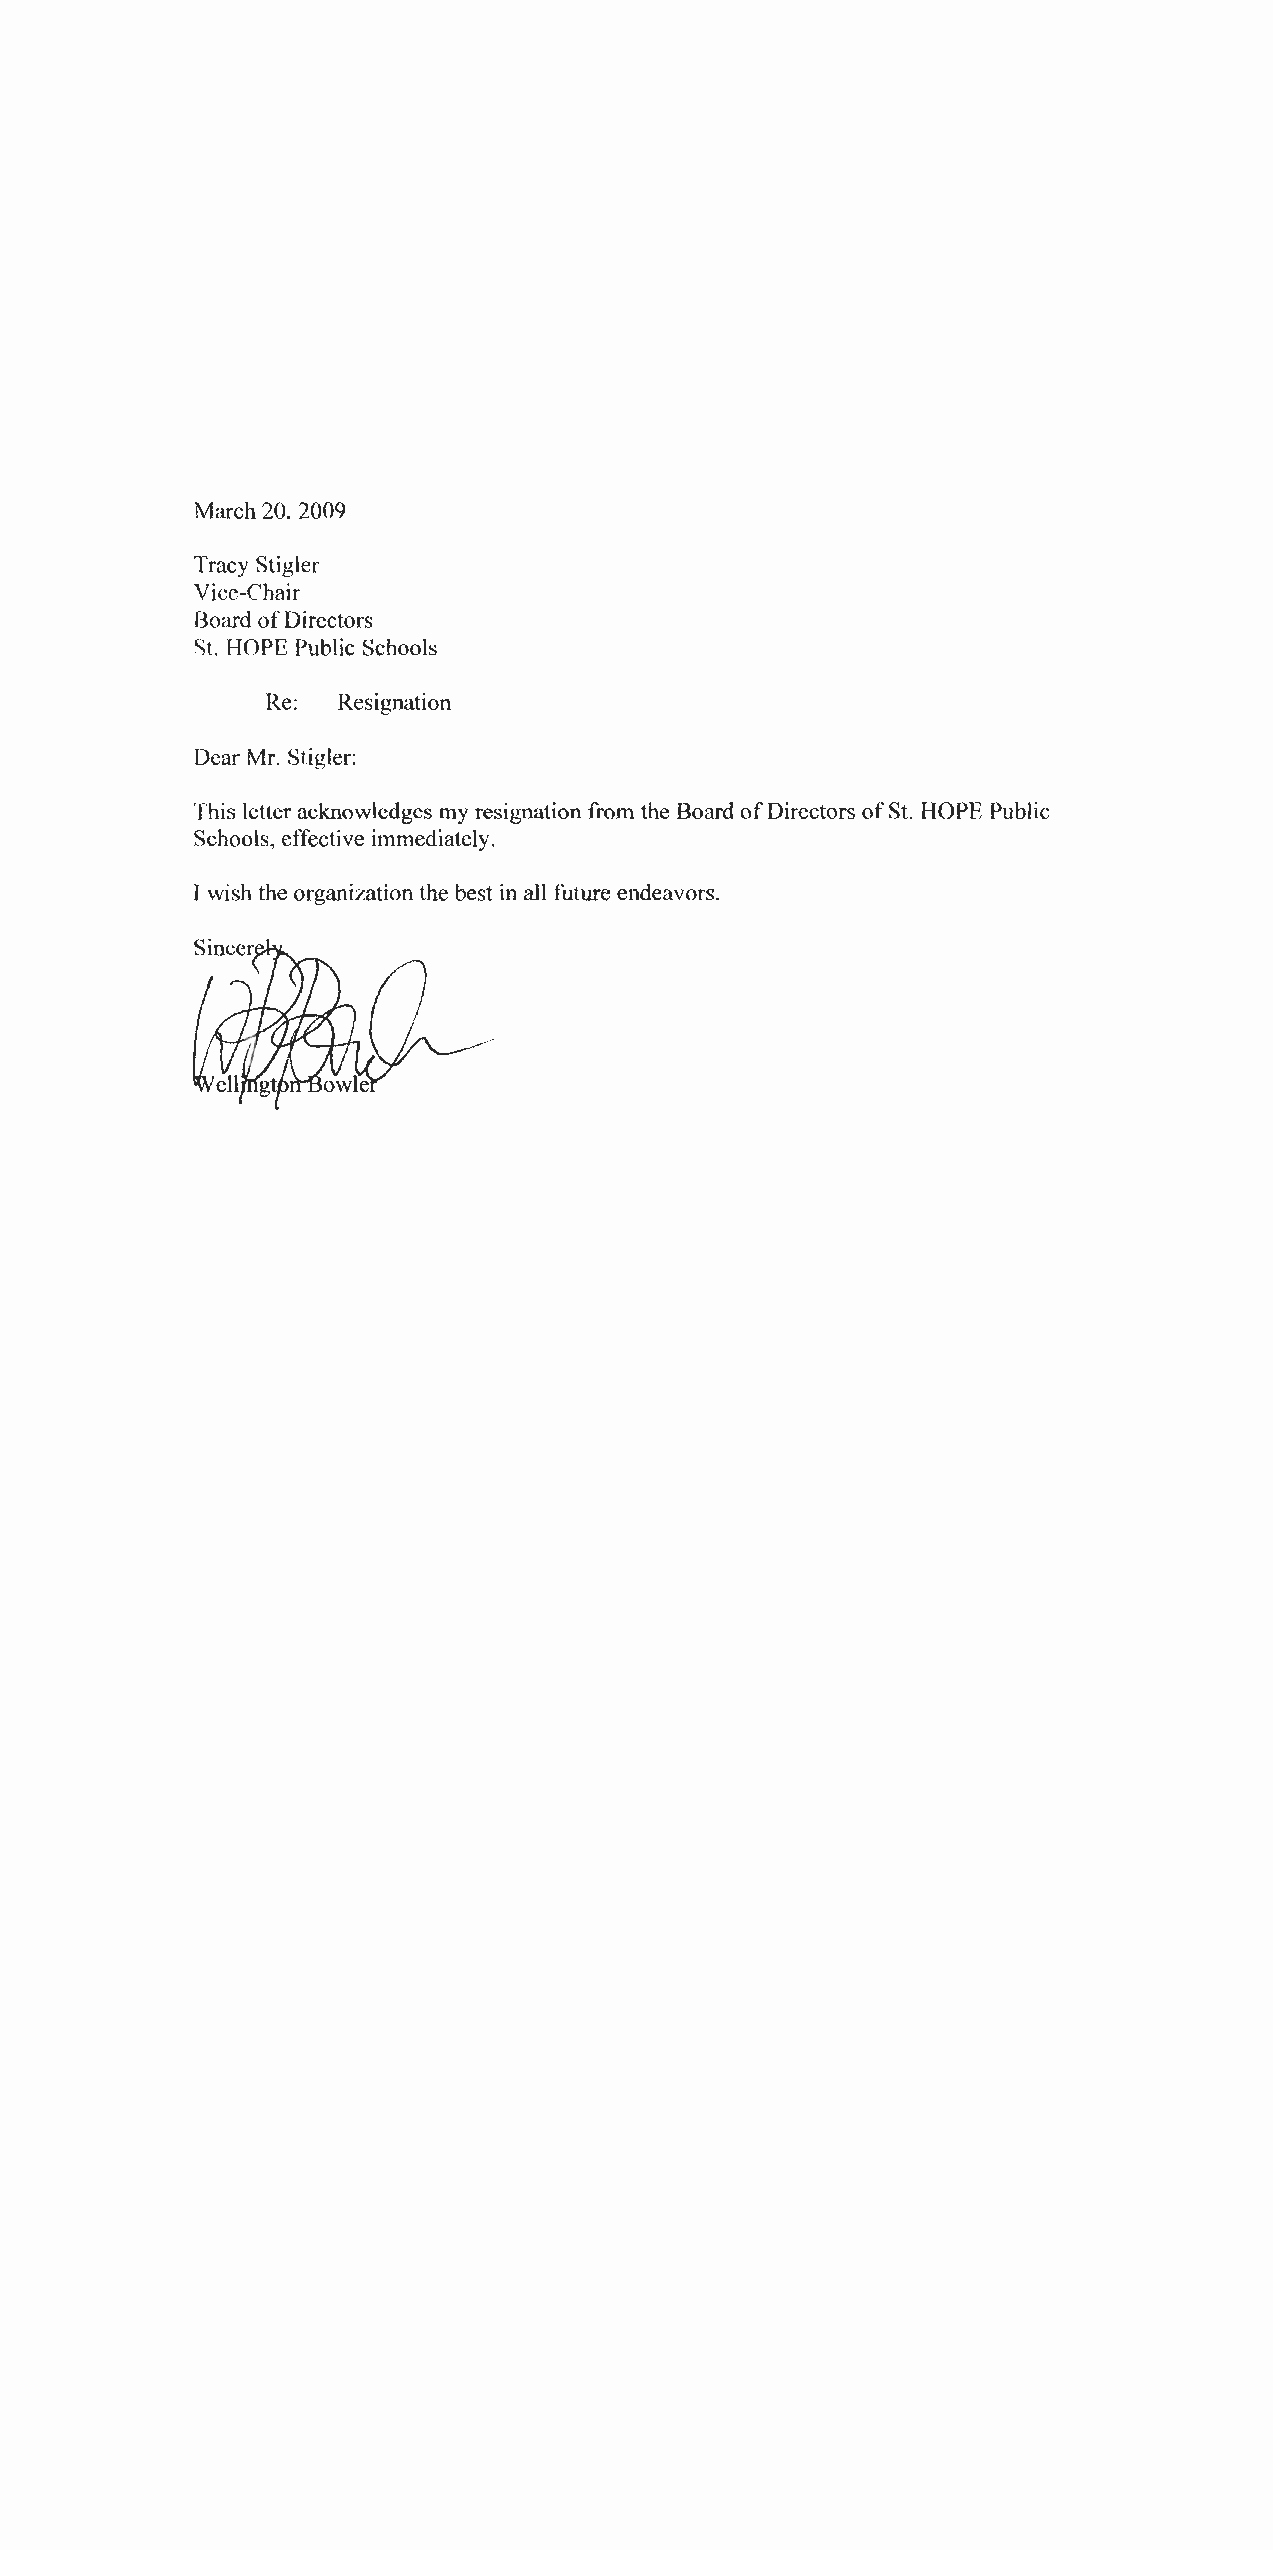 Resignation From Board Of Directors Awesome Resignation Letter From Board Directors – Calendar